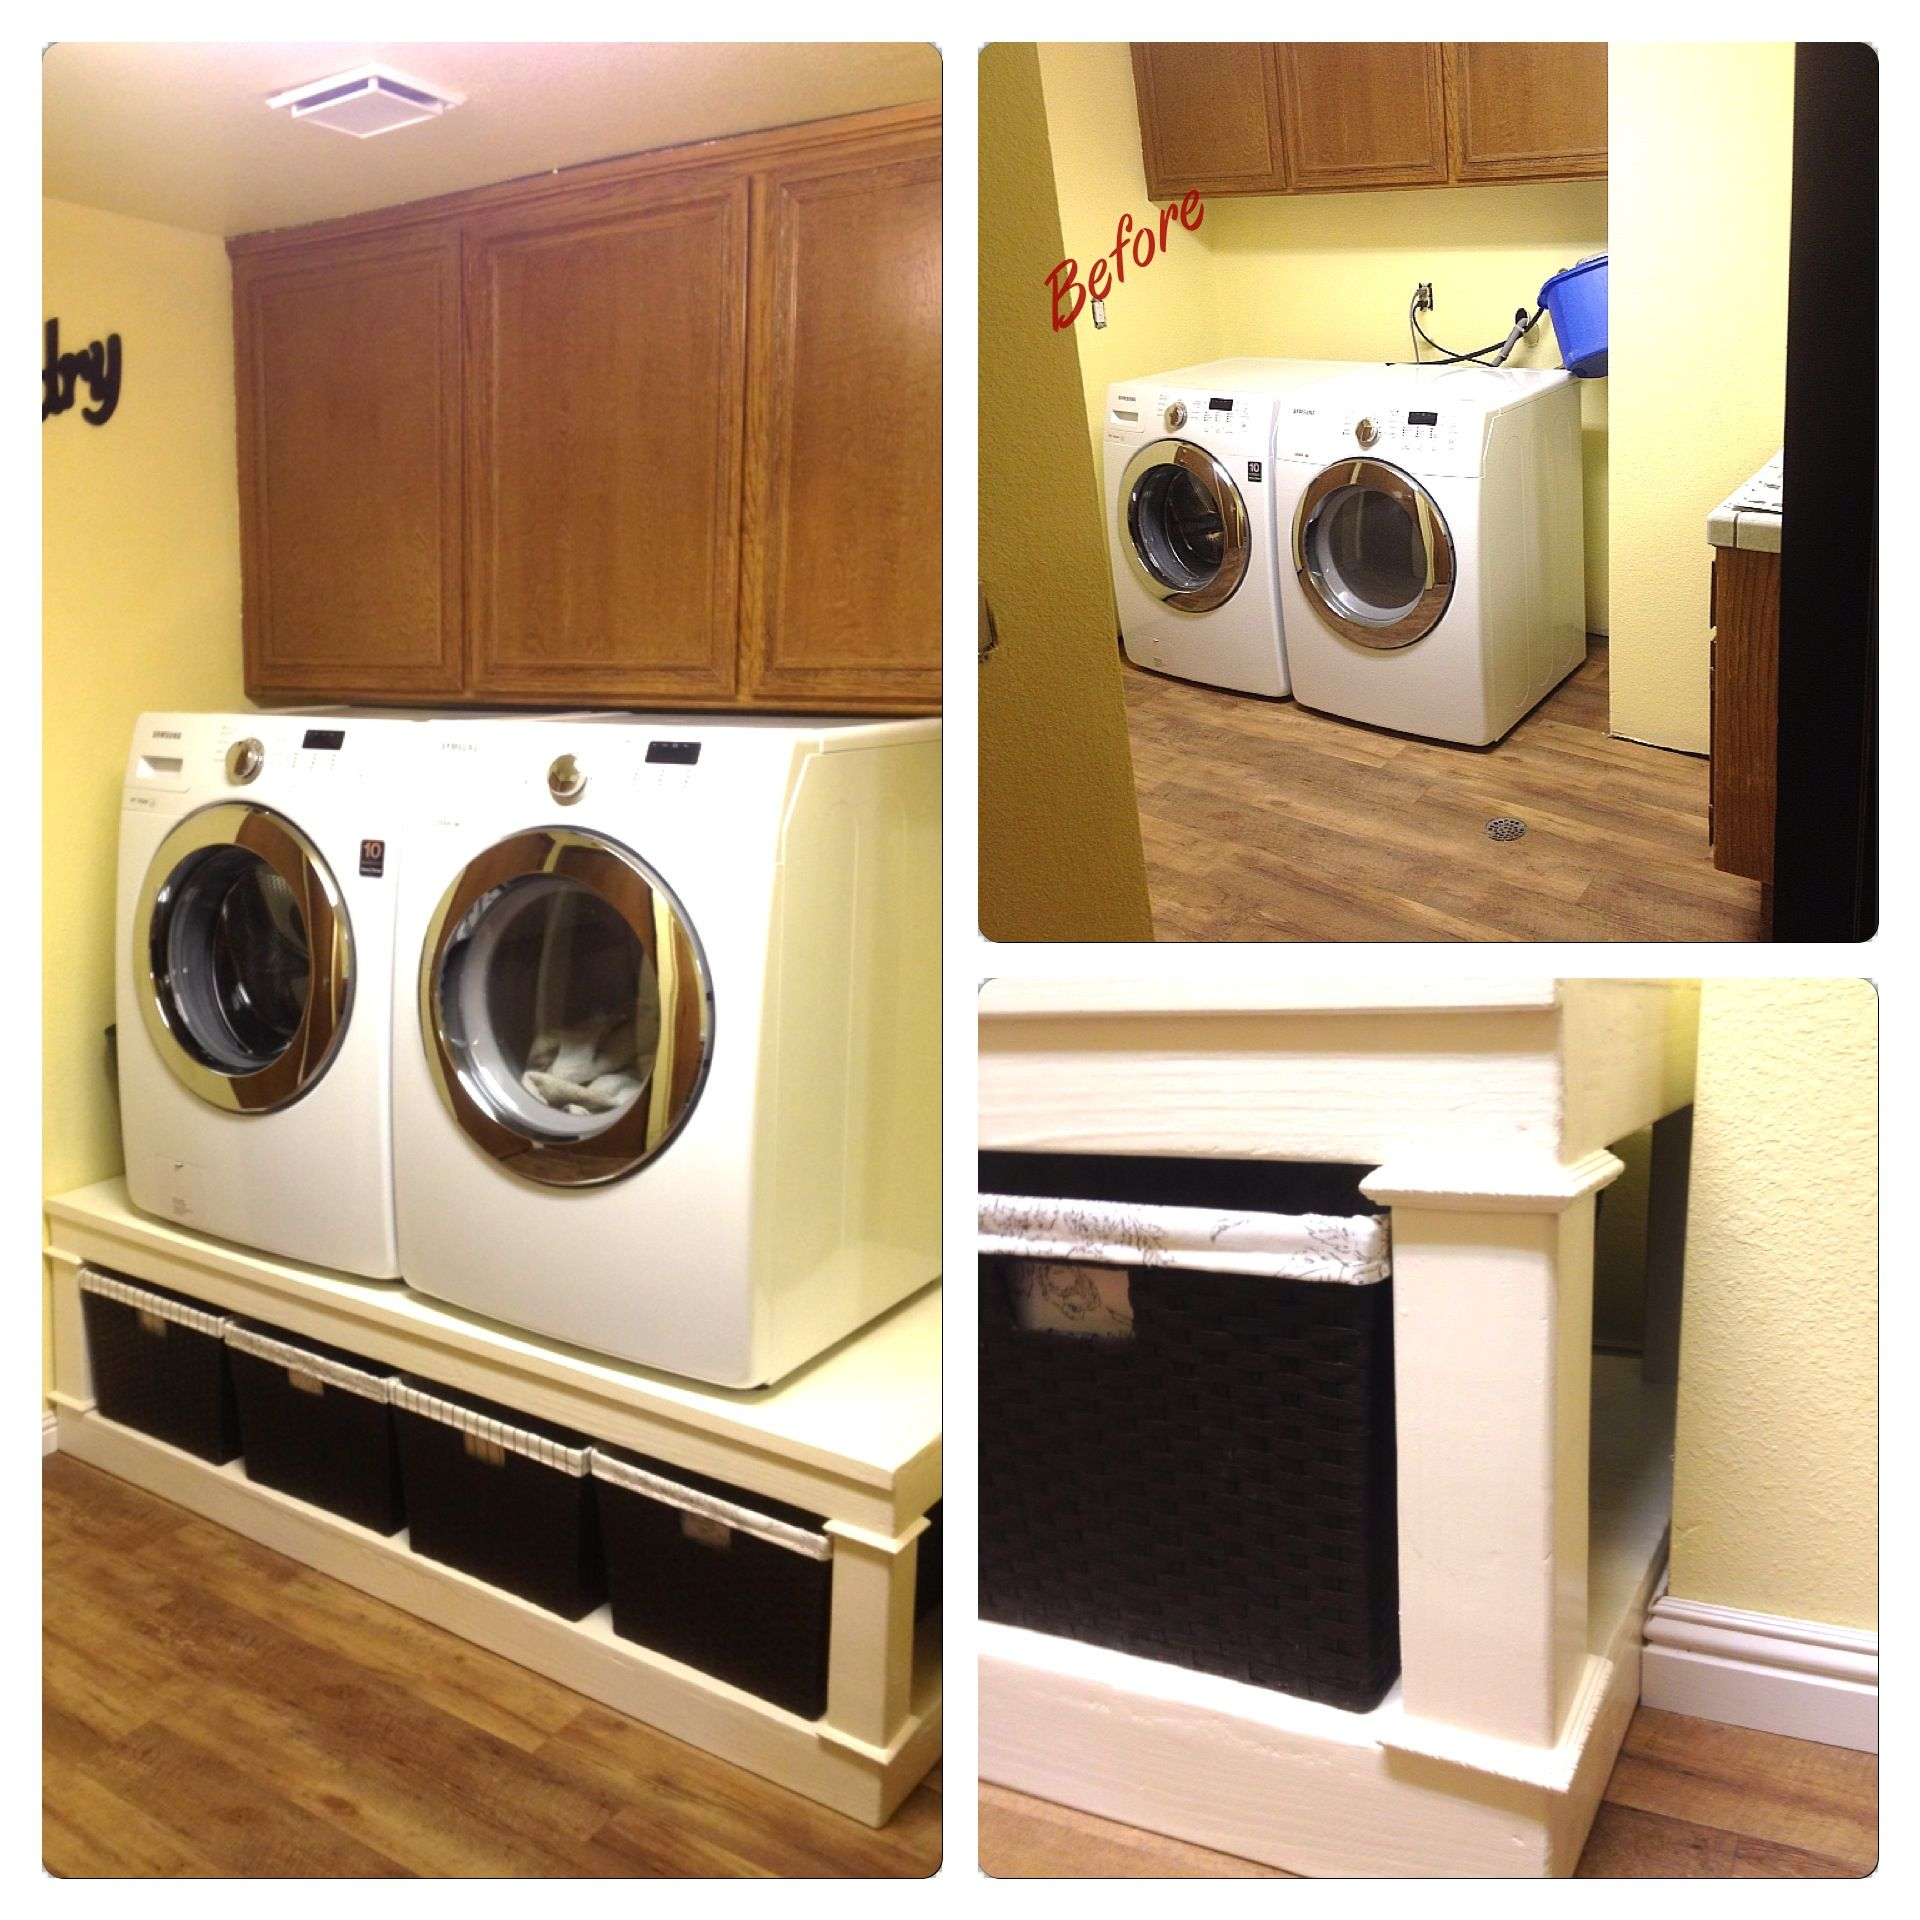 Put In A Laundry Pedestal Raised Up The Washer And Dryer To The Perfect Height Interior Design Trends Living Room Interior Interior Design Living Room